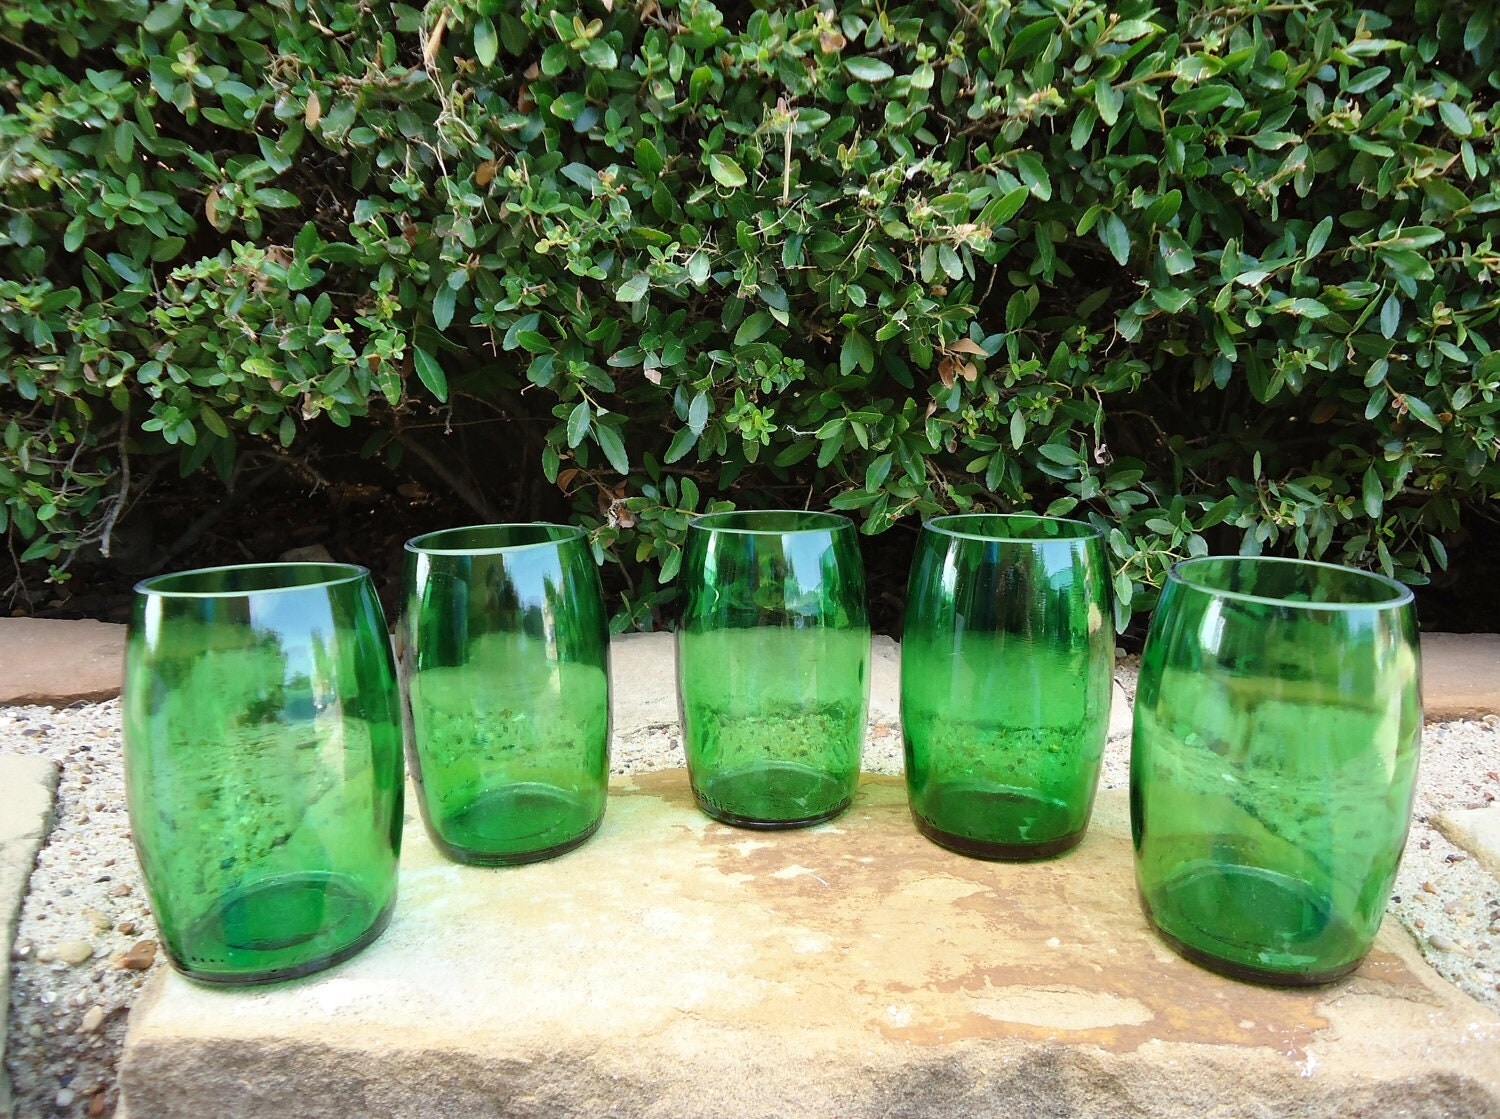 Green Shot Glass Hand Grenades made from Upcycled Perrier Bottles Set of 5